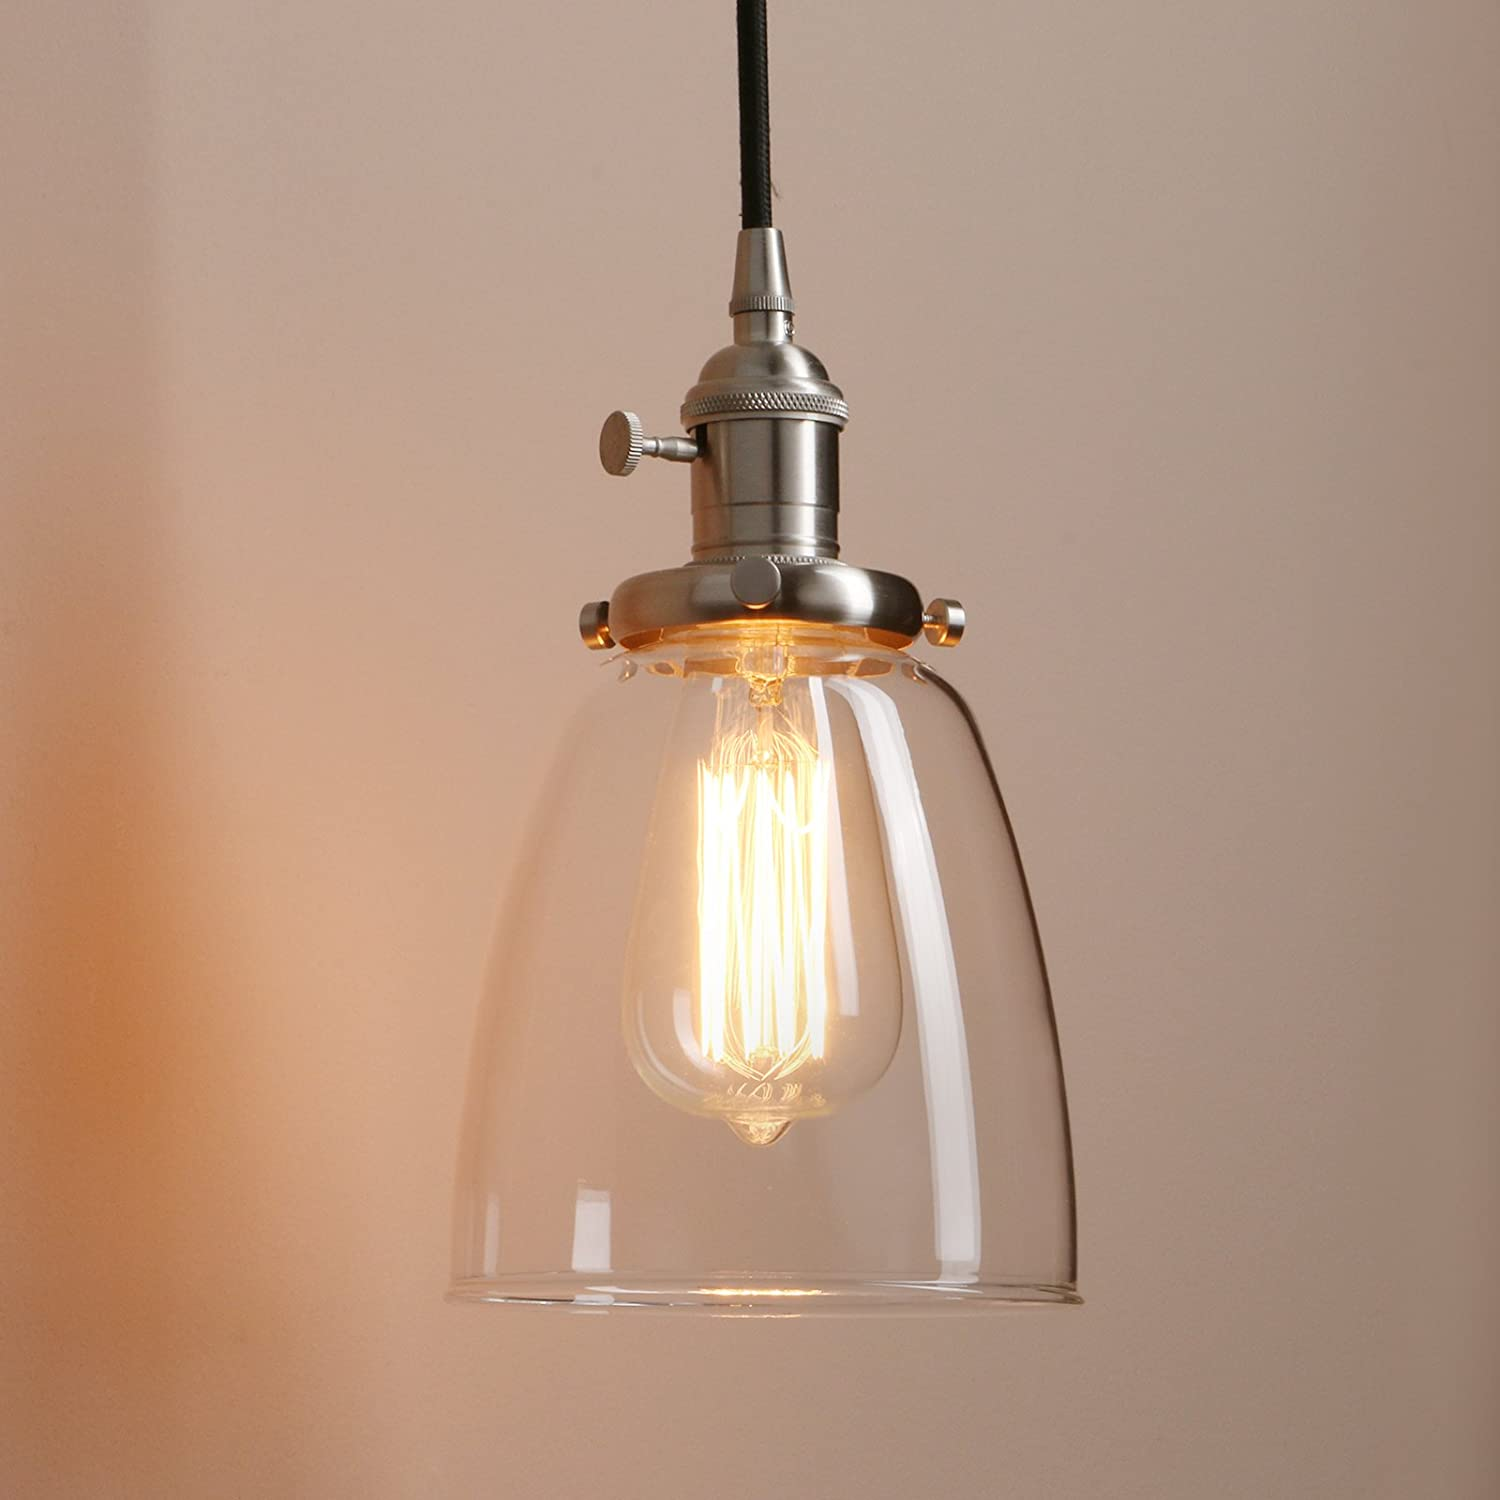 Pathson Industrial Modern Vintage Loft Bar Kitchen Ceiling Pendant Lights